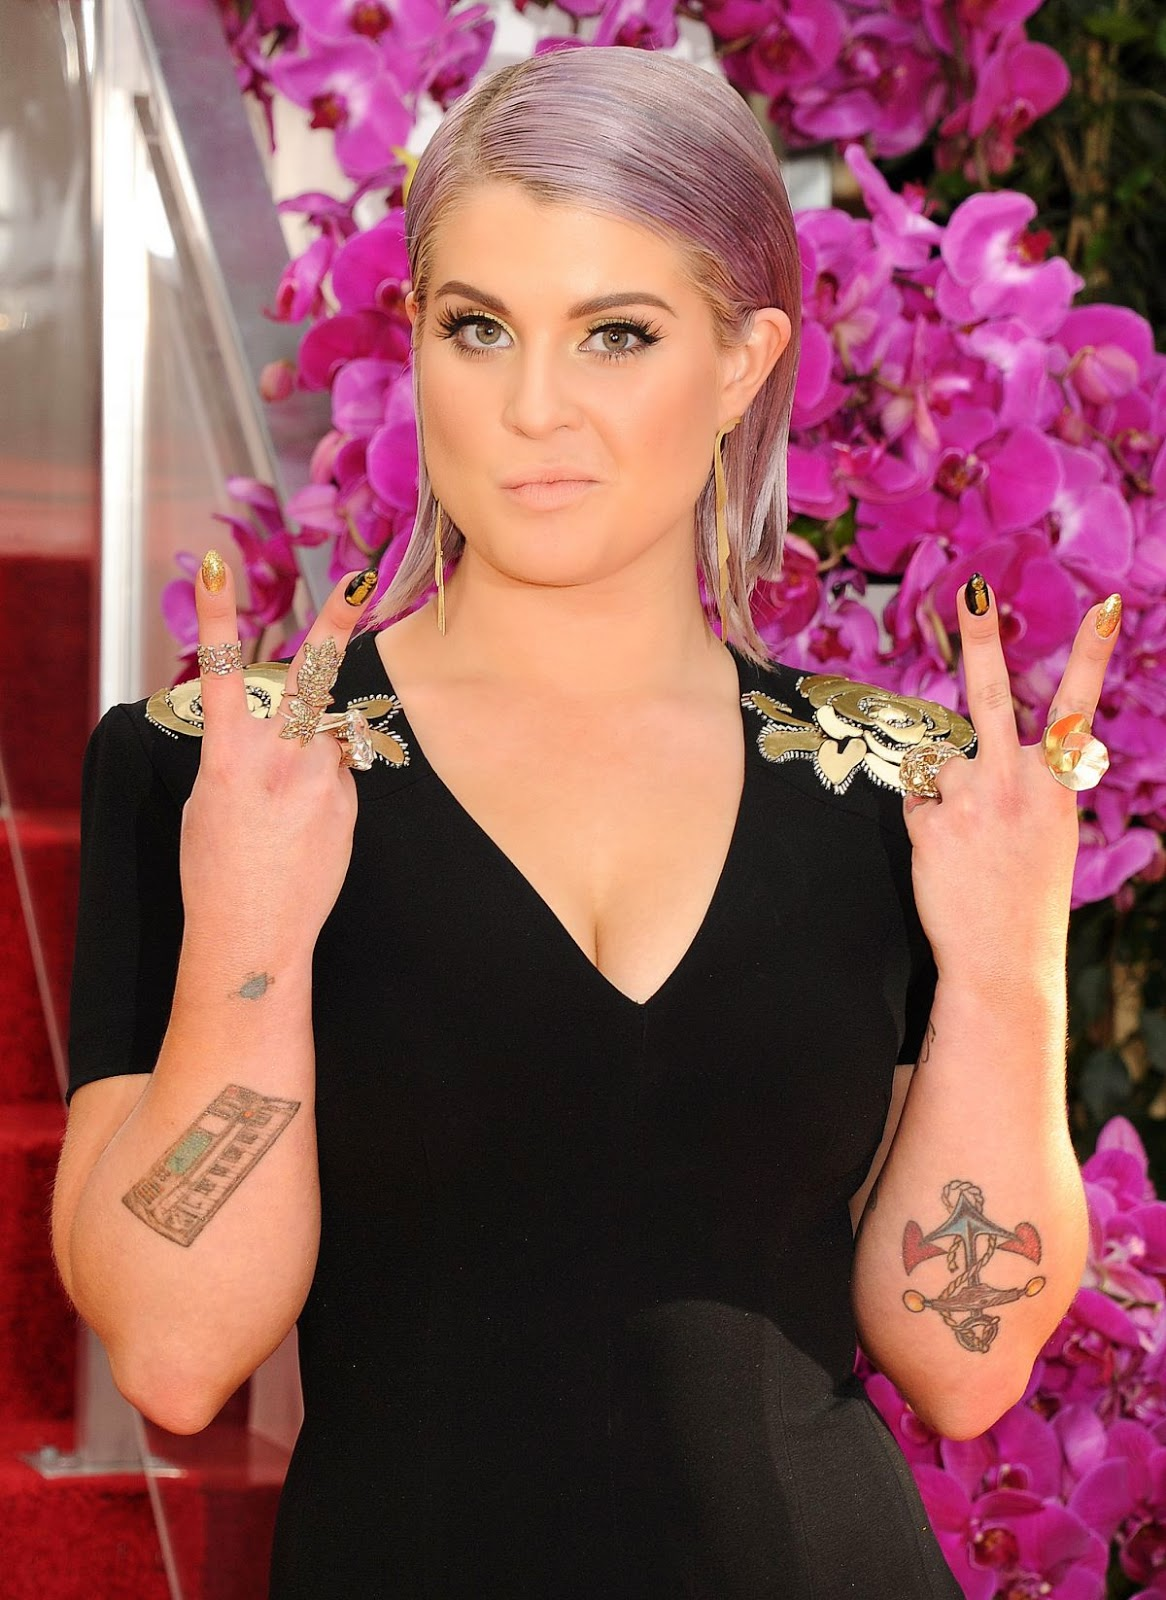 Celebrity Pictures Gossip: Kelly OsbourneKelly Osbourne Age